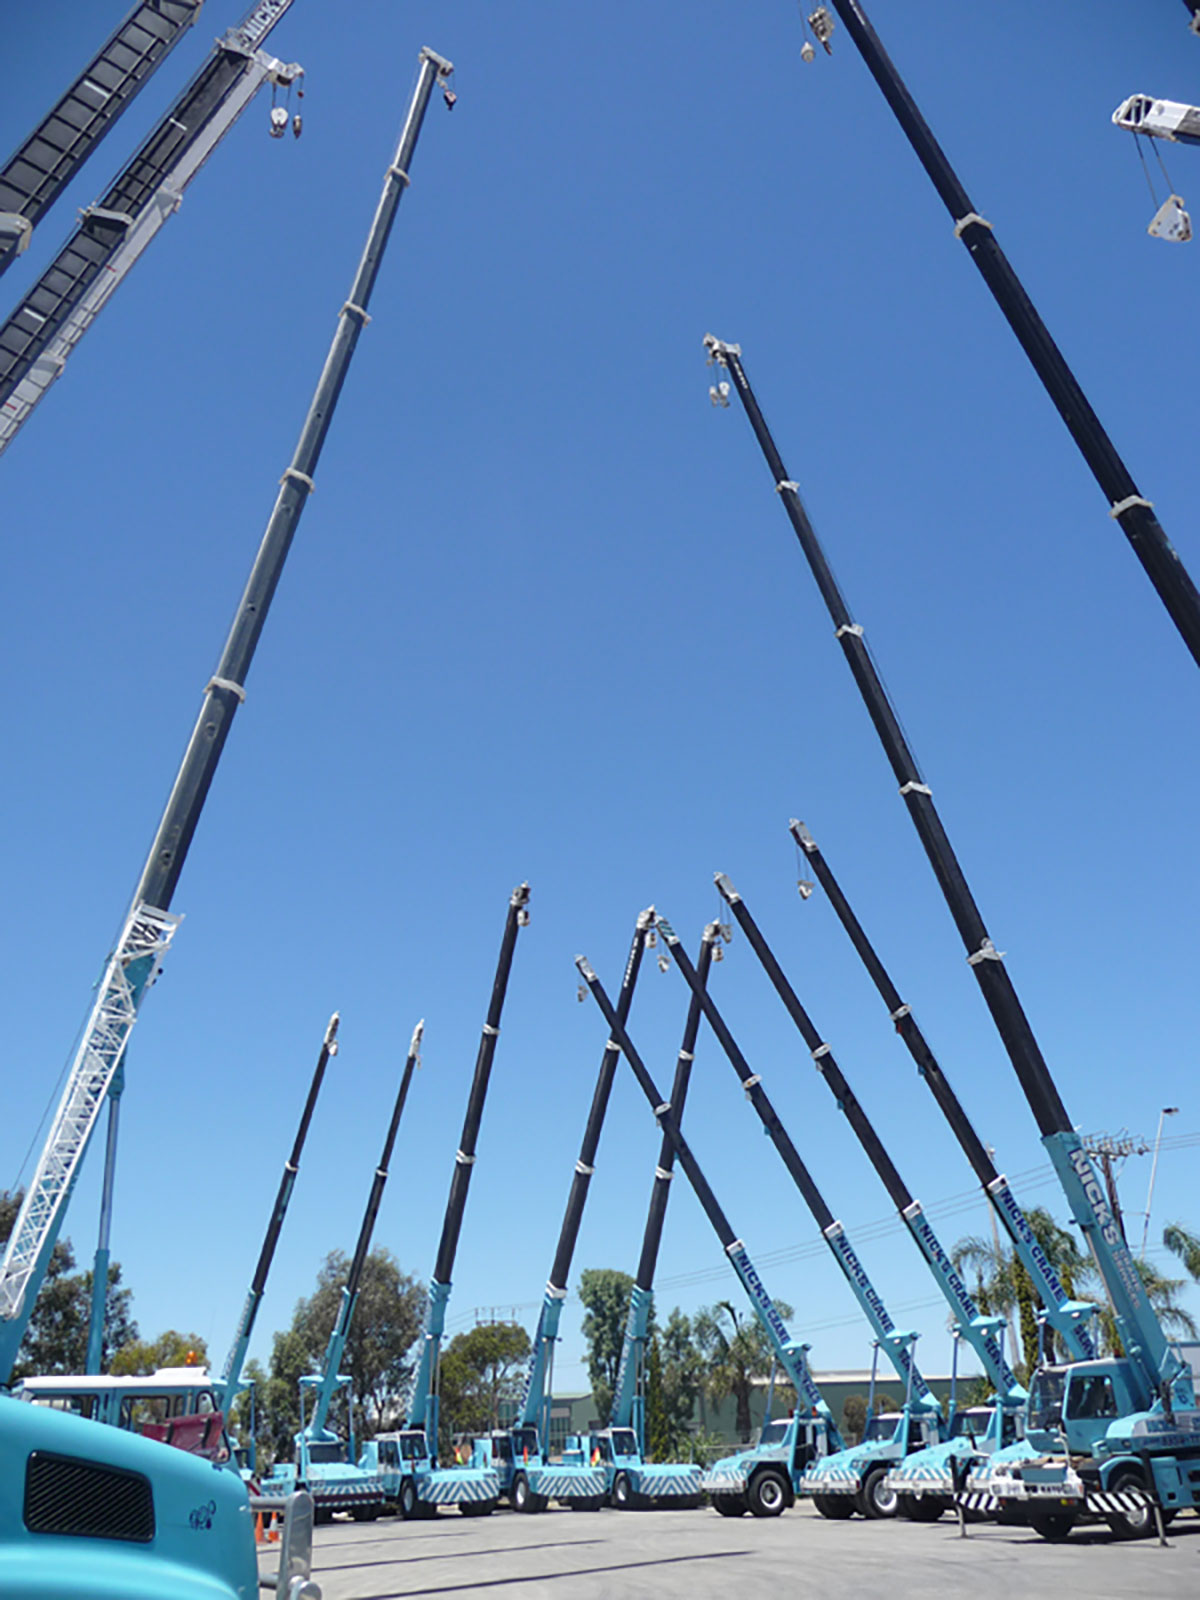 Nicks-Cranes-Services-fleet-franna-hire-Adelaide-Wingfield